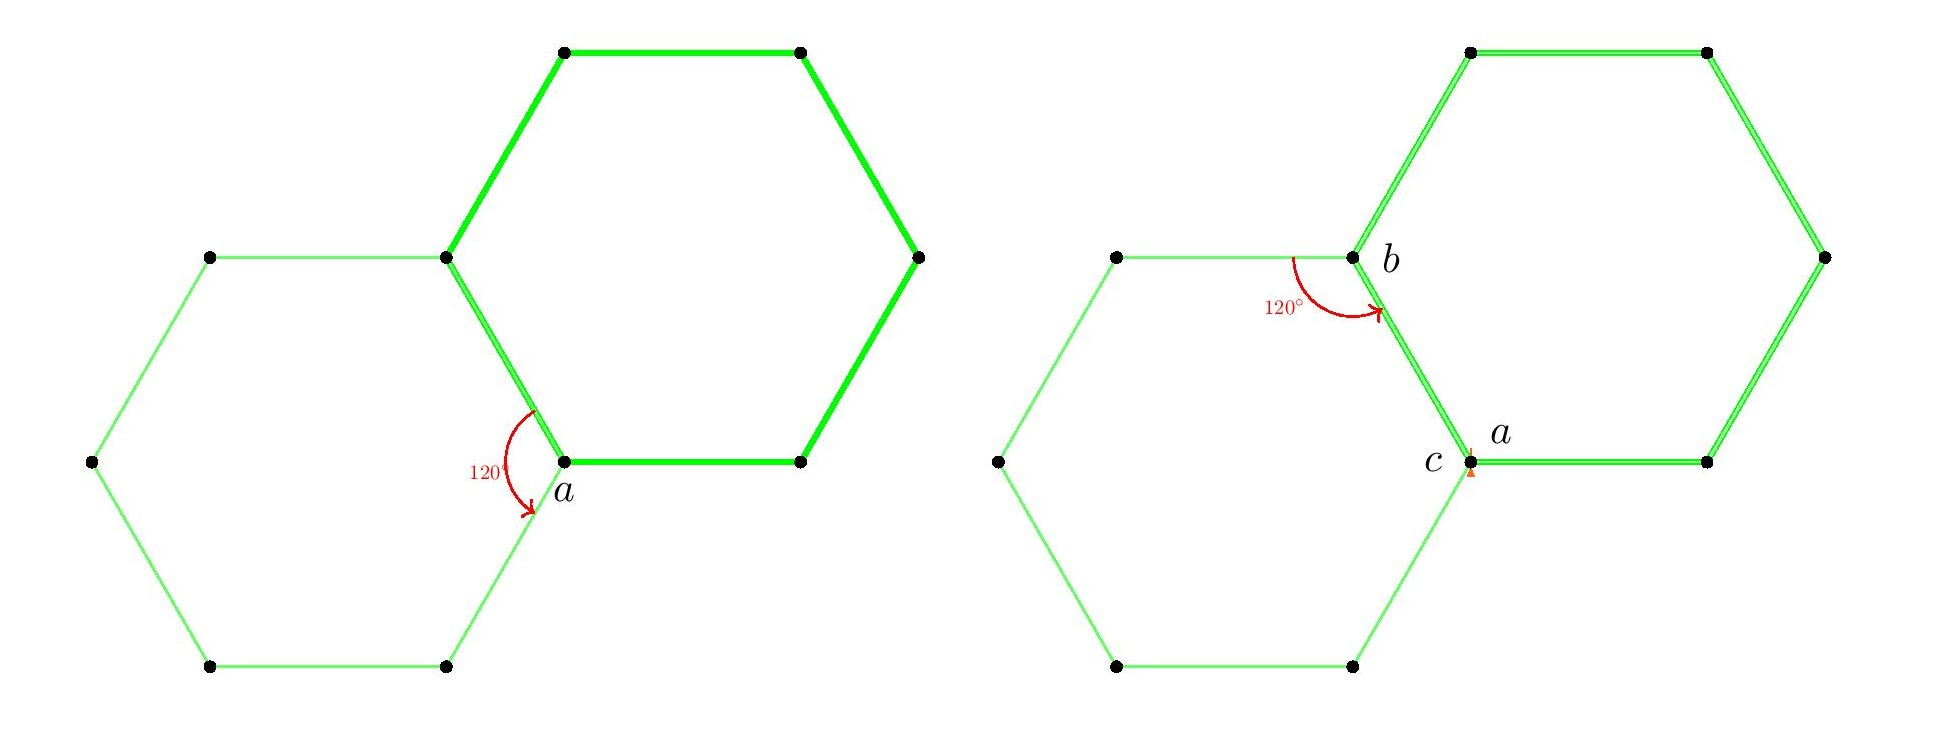 There are no regular polygons in the hexagonal lattice